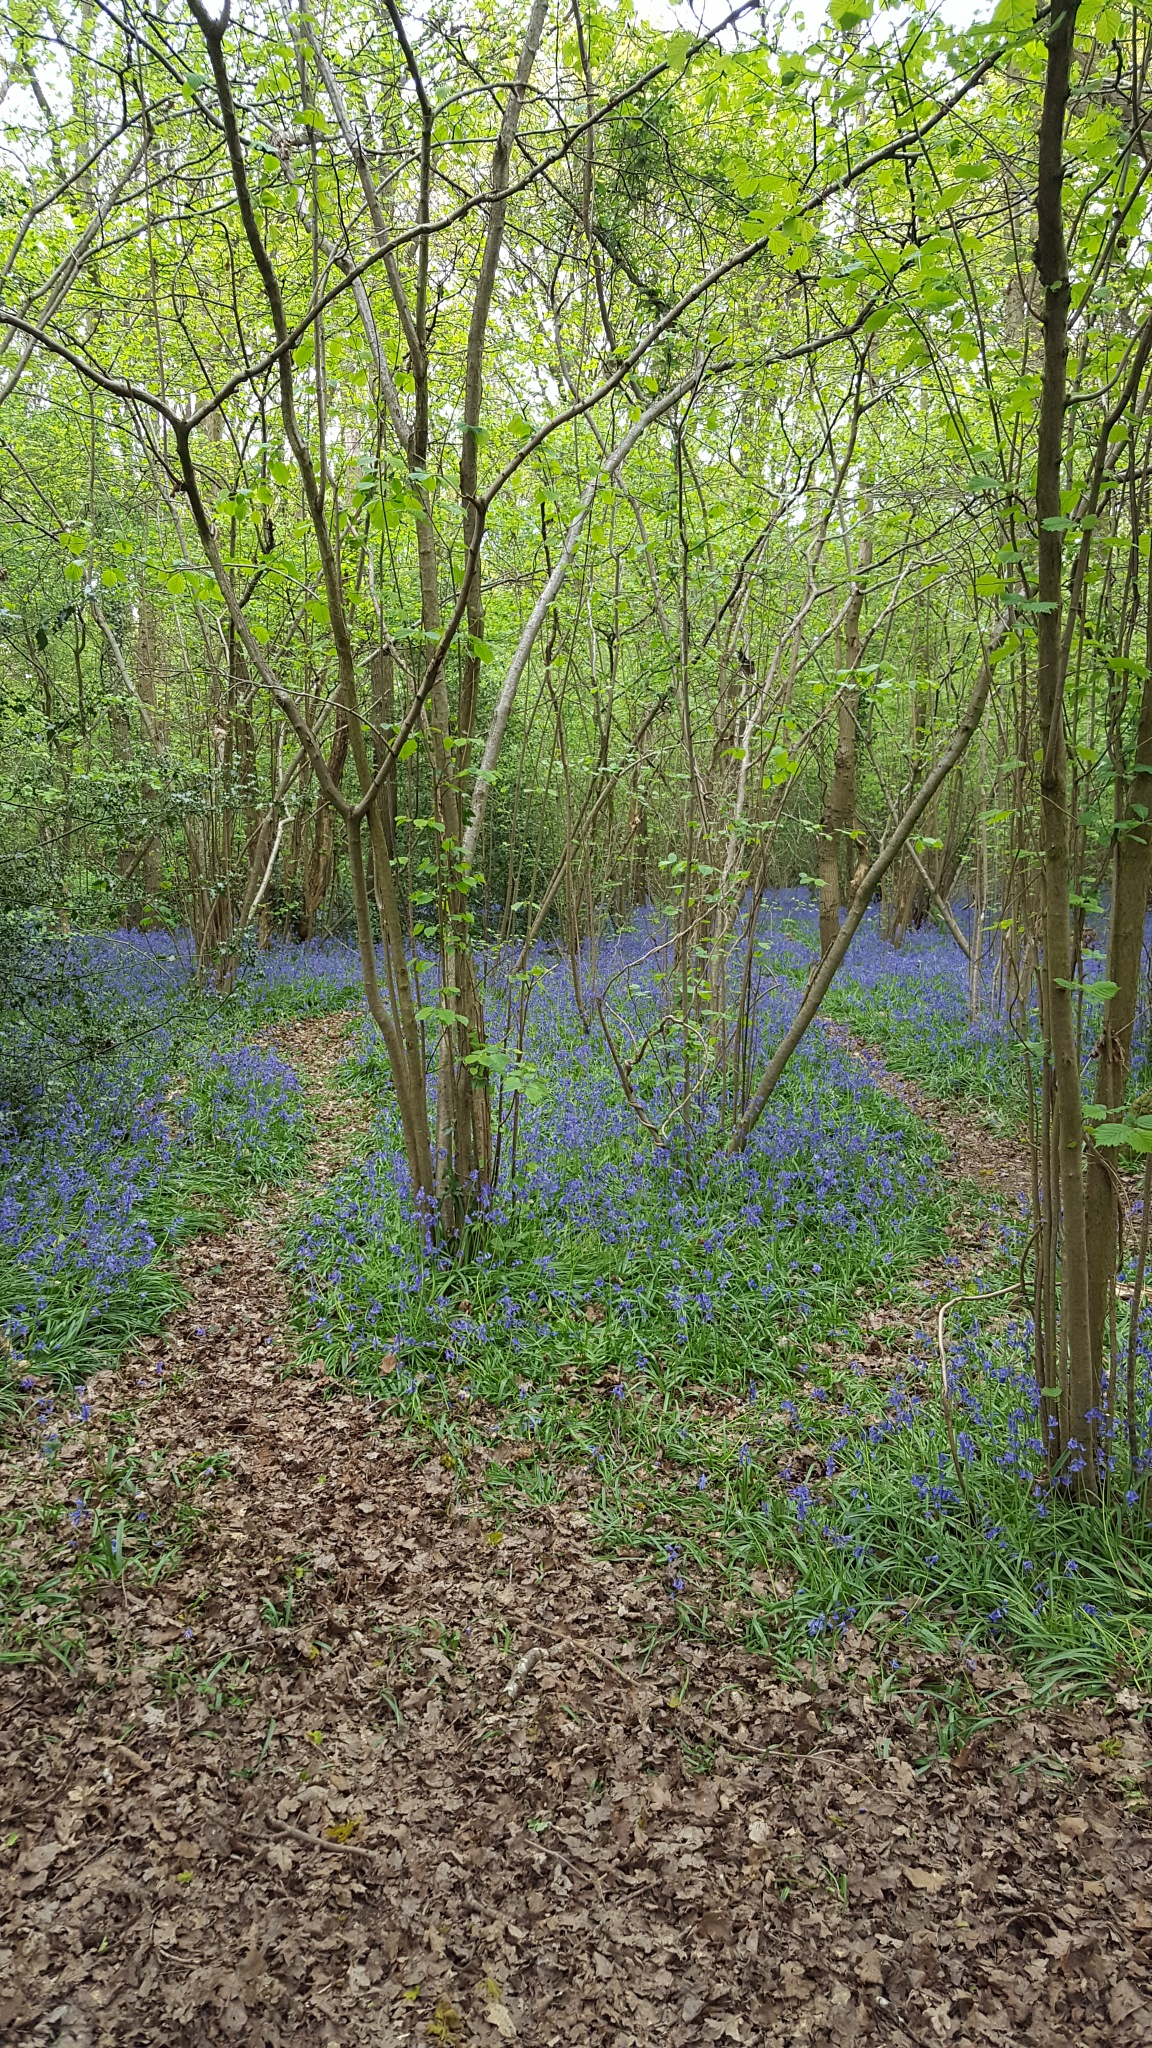 Bluebells in the woods  by JayneG